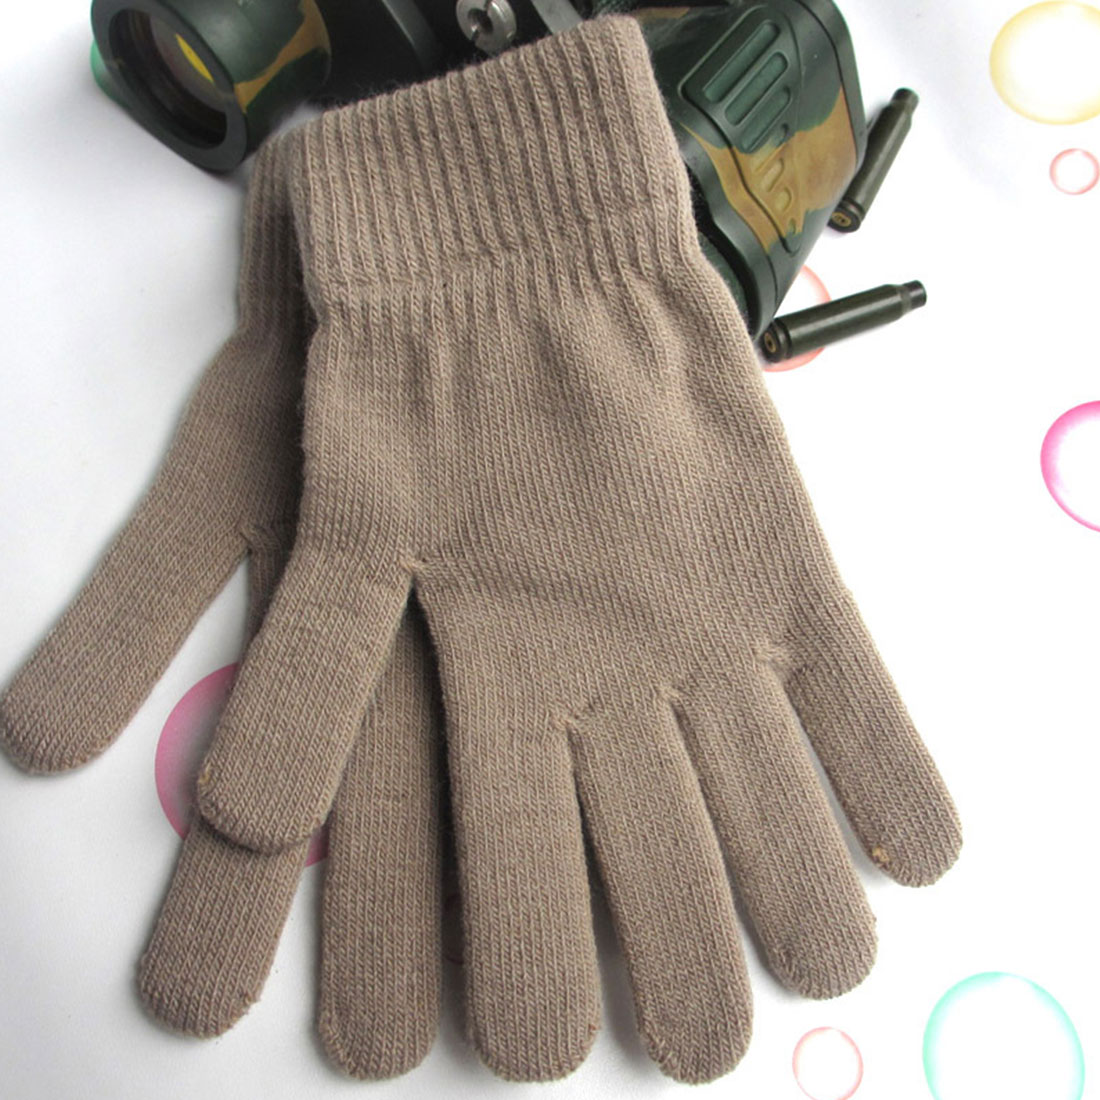 Trend Snow Thickening Plus Velvet High Stretch Casual Men's And Women's Warm Winter Fashion Gloves Knit Five Fingers Magic Glove